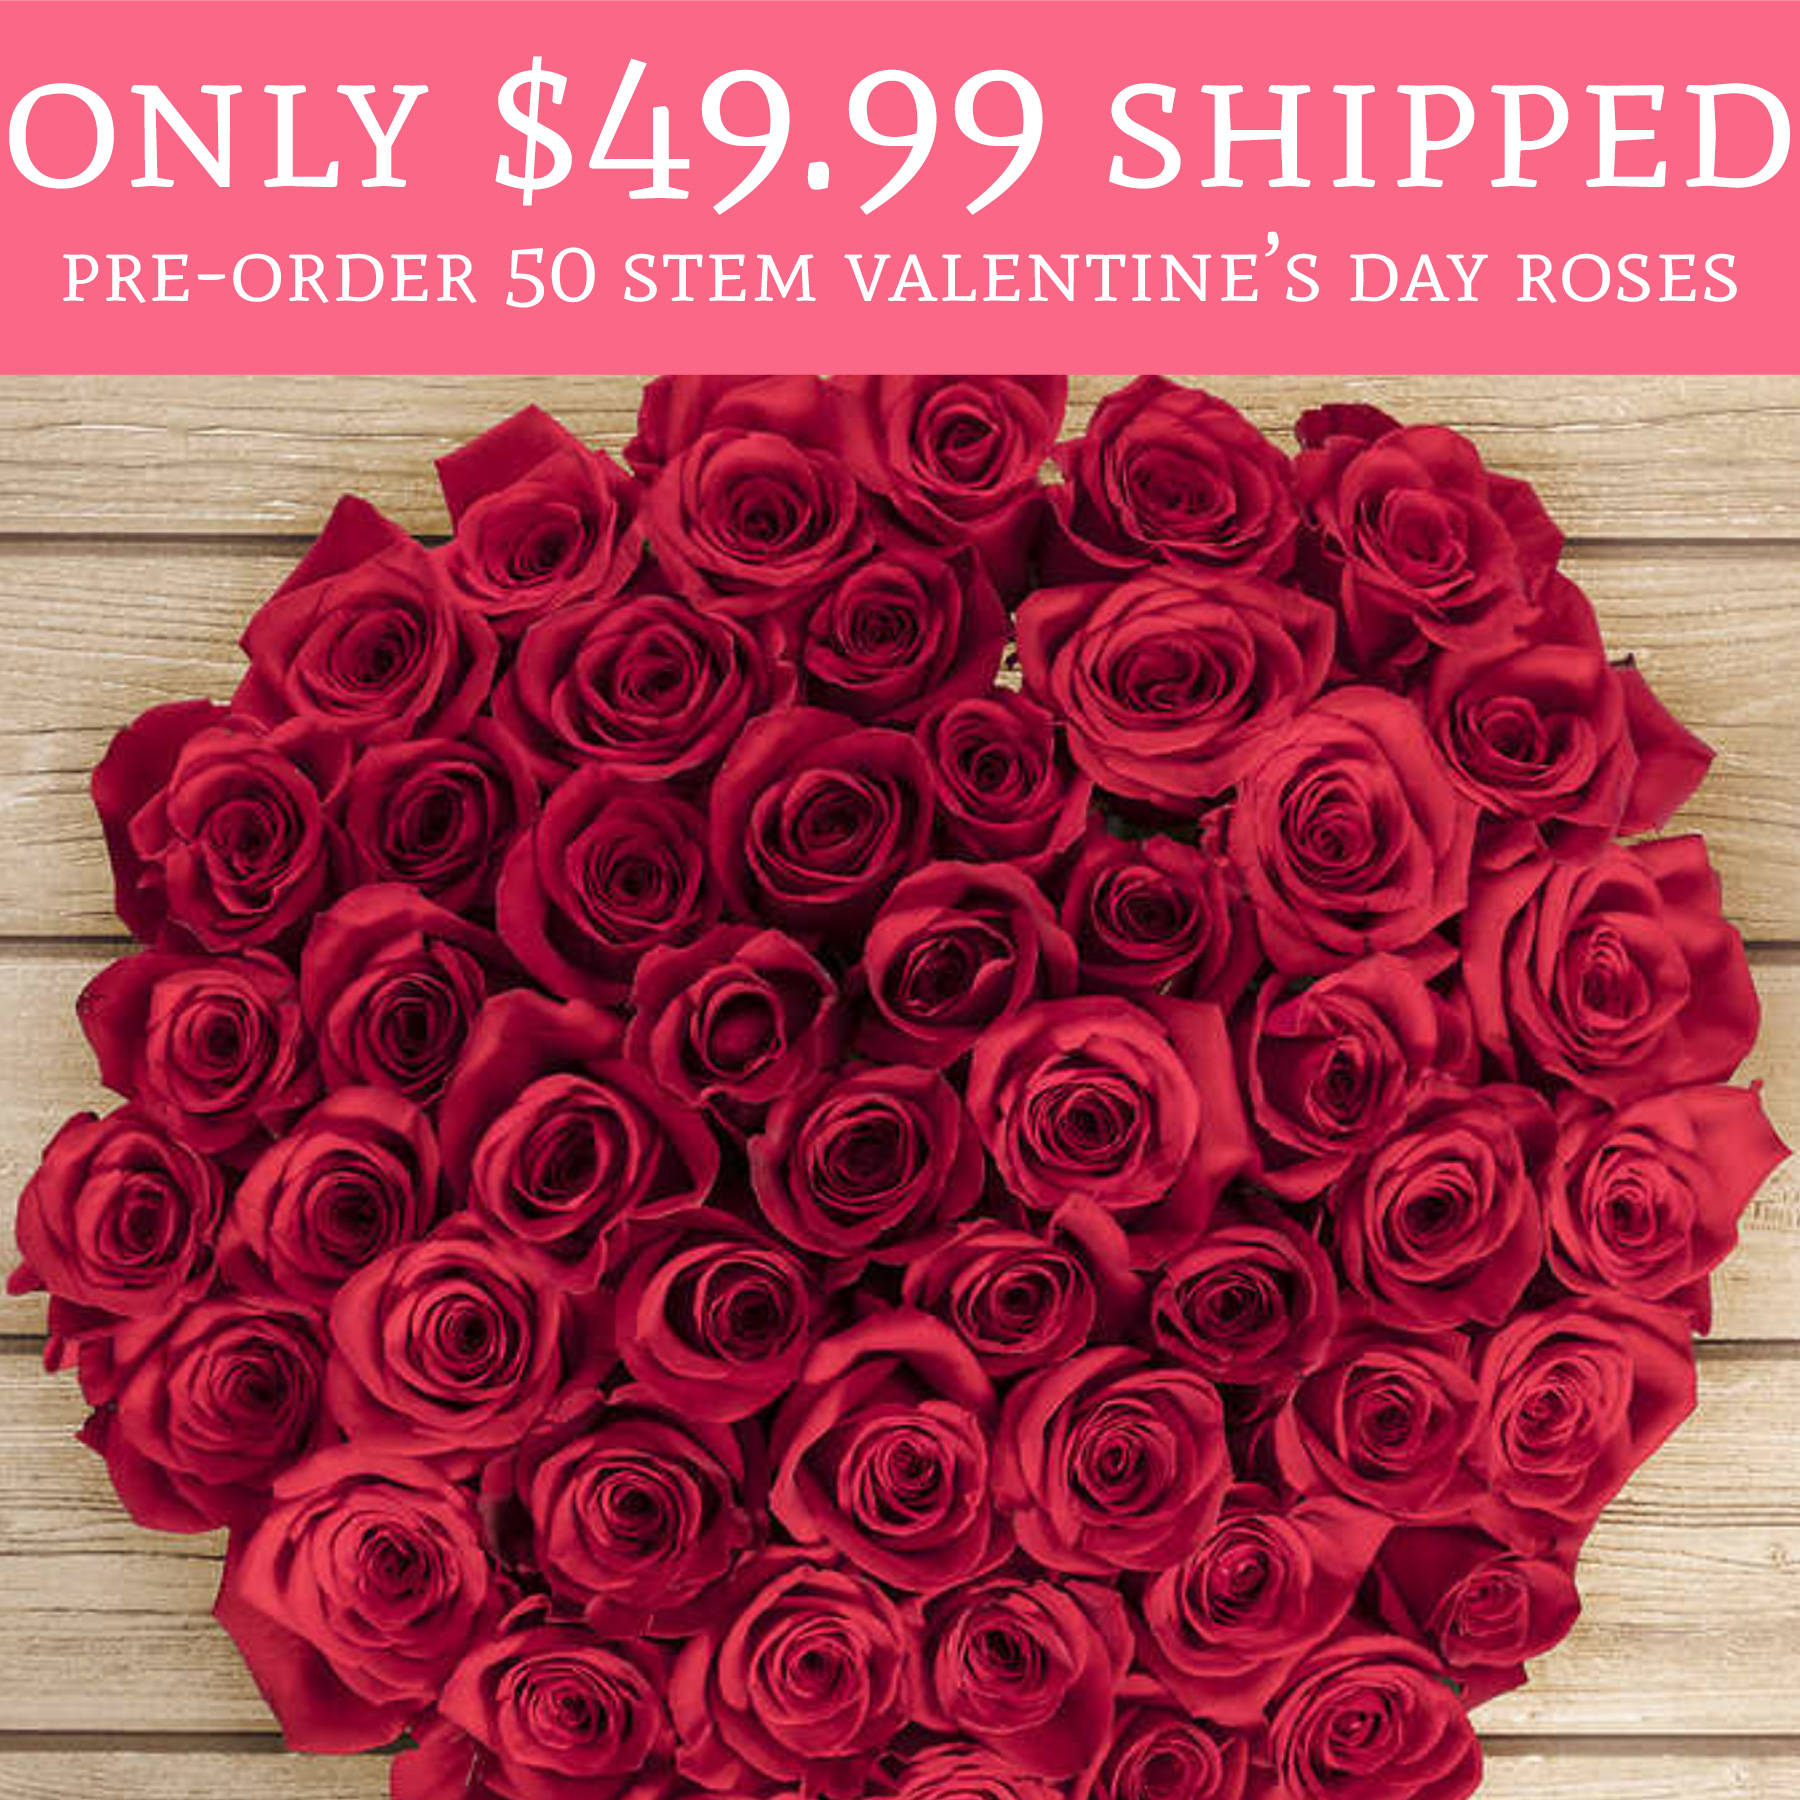 Only shipped pre order 50 stem valentine 39 s day for Buying roses on valentines day